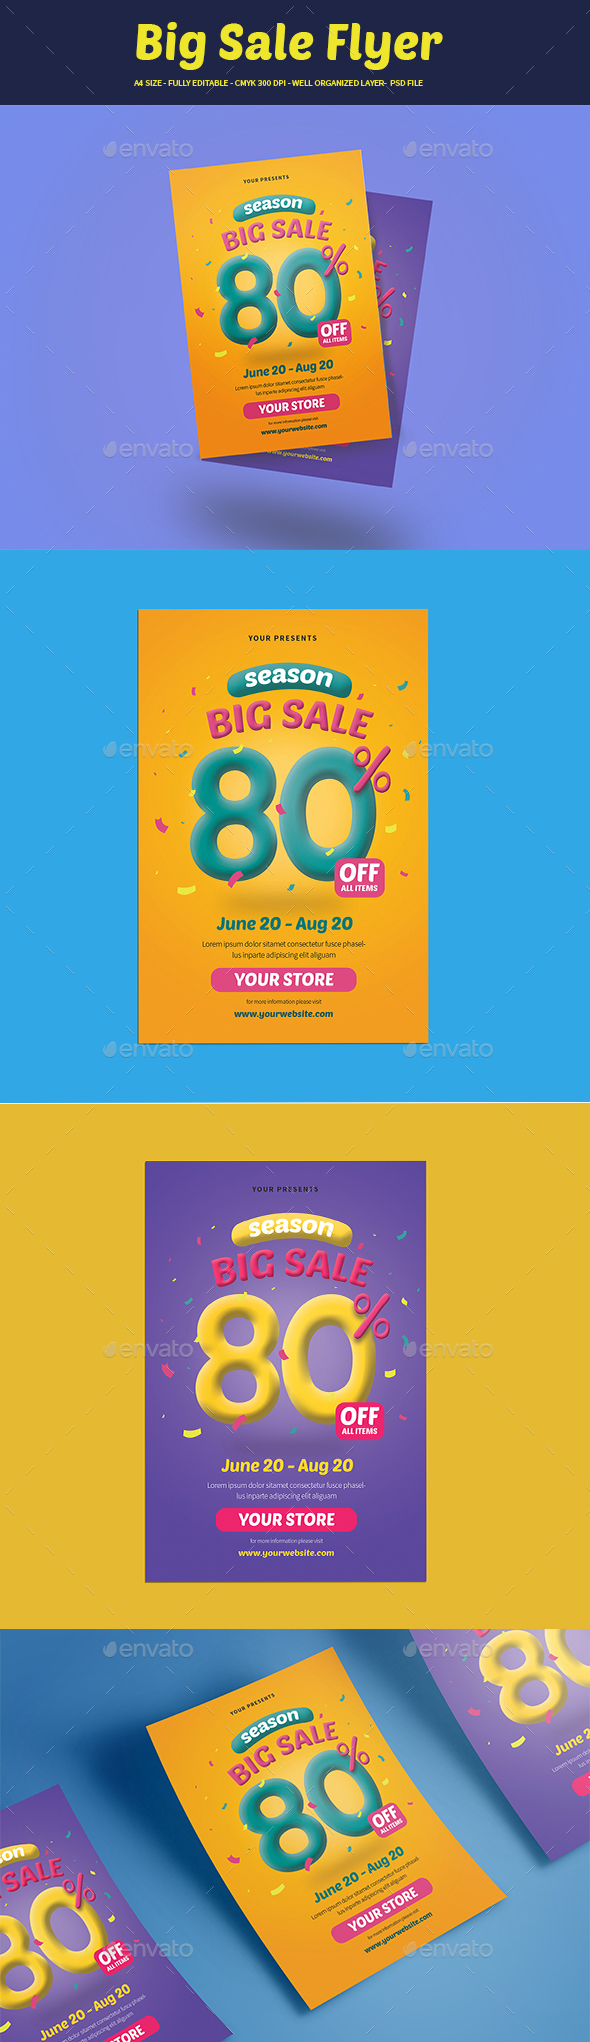 Big Sale Flyer - Flyers Print Templates